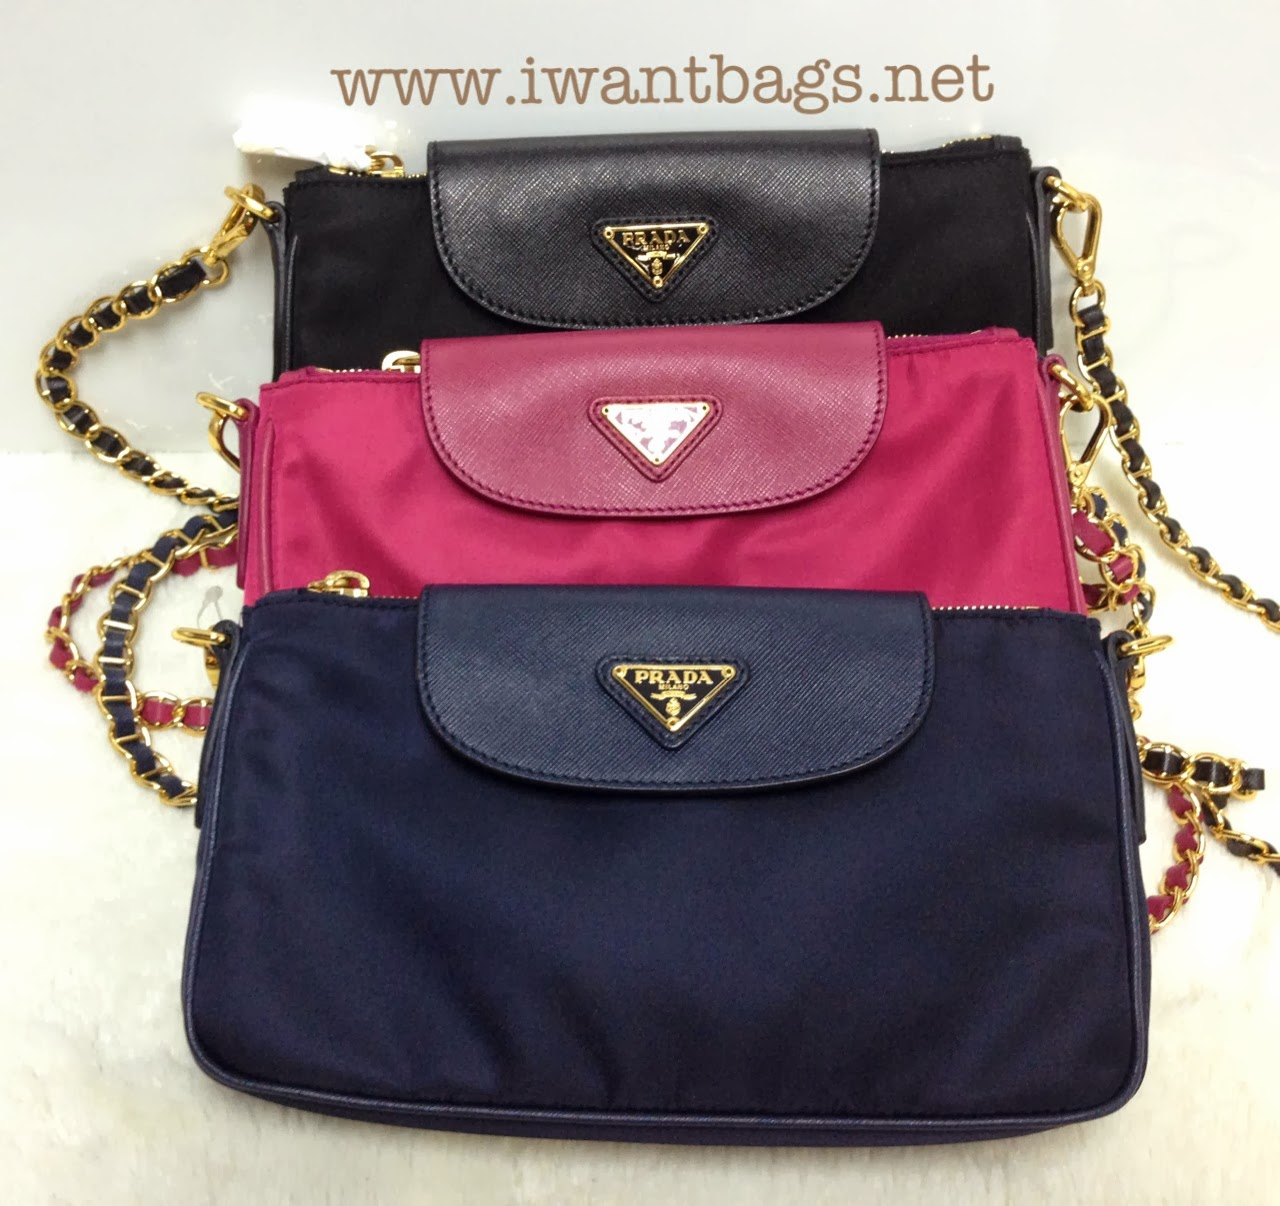 ... authentic prada nylon tessuto saffiano clutch sling bag bt0779 71962  d0cbc c5886261bf26d